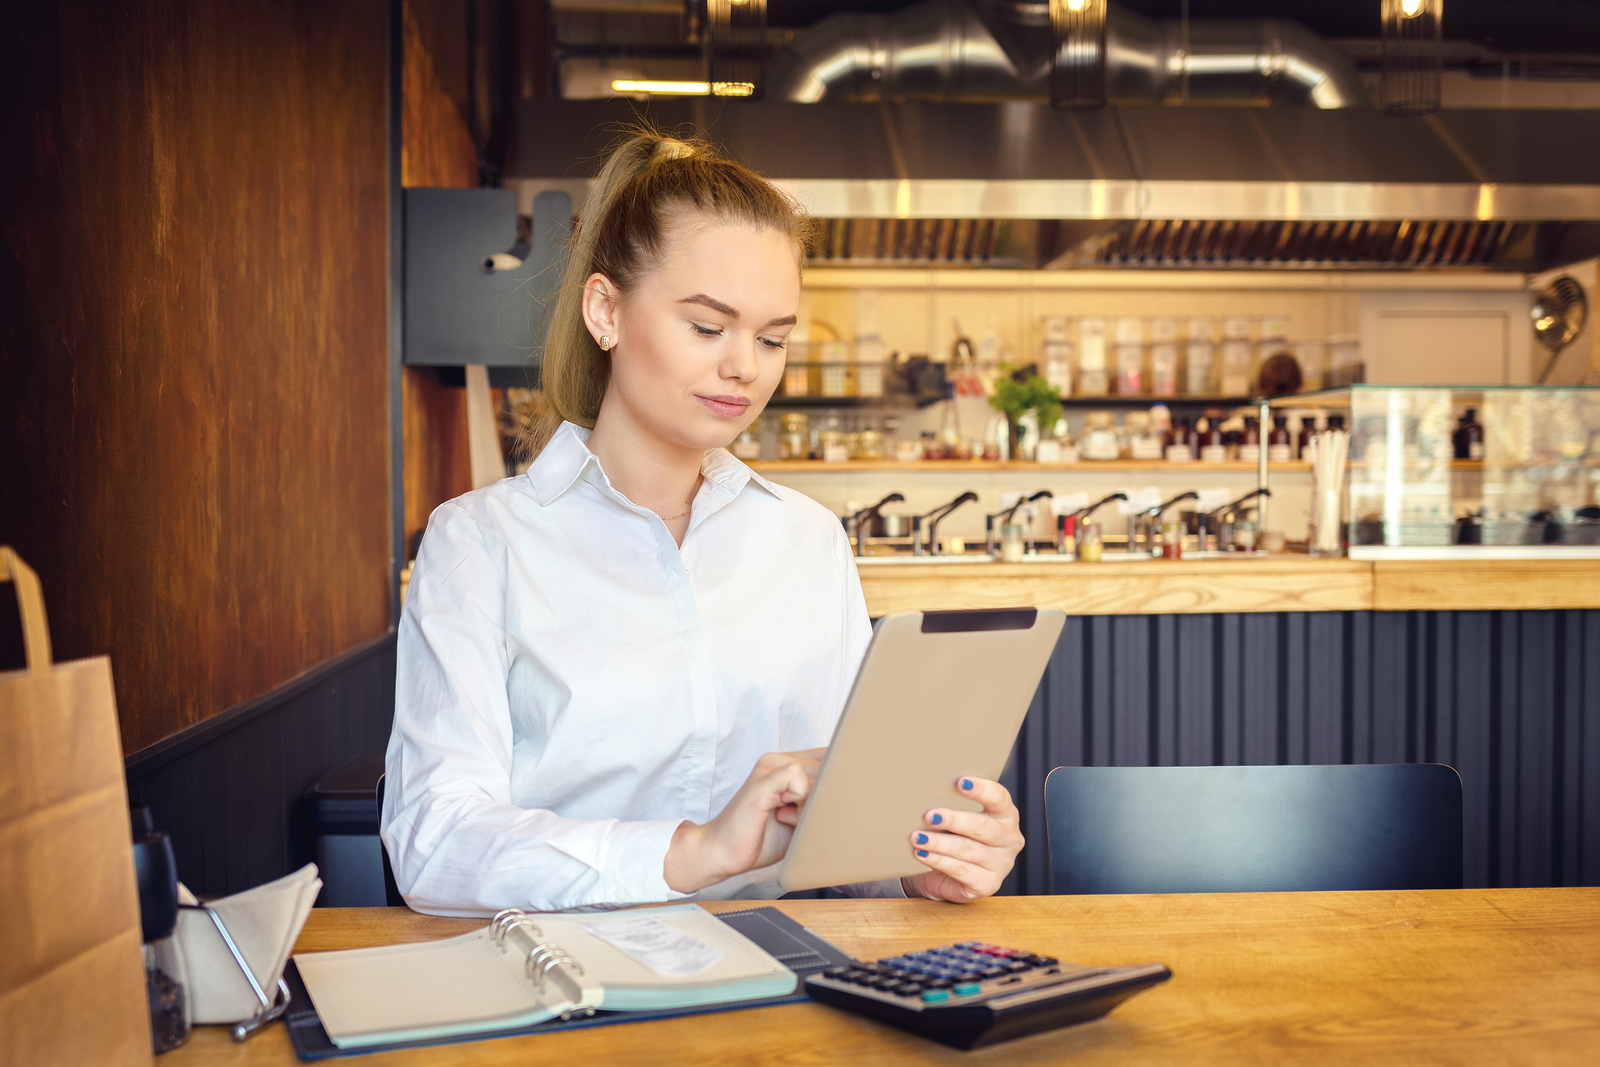 Buying a Bar? Read These 5 Tips to Ensure Success